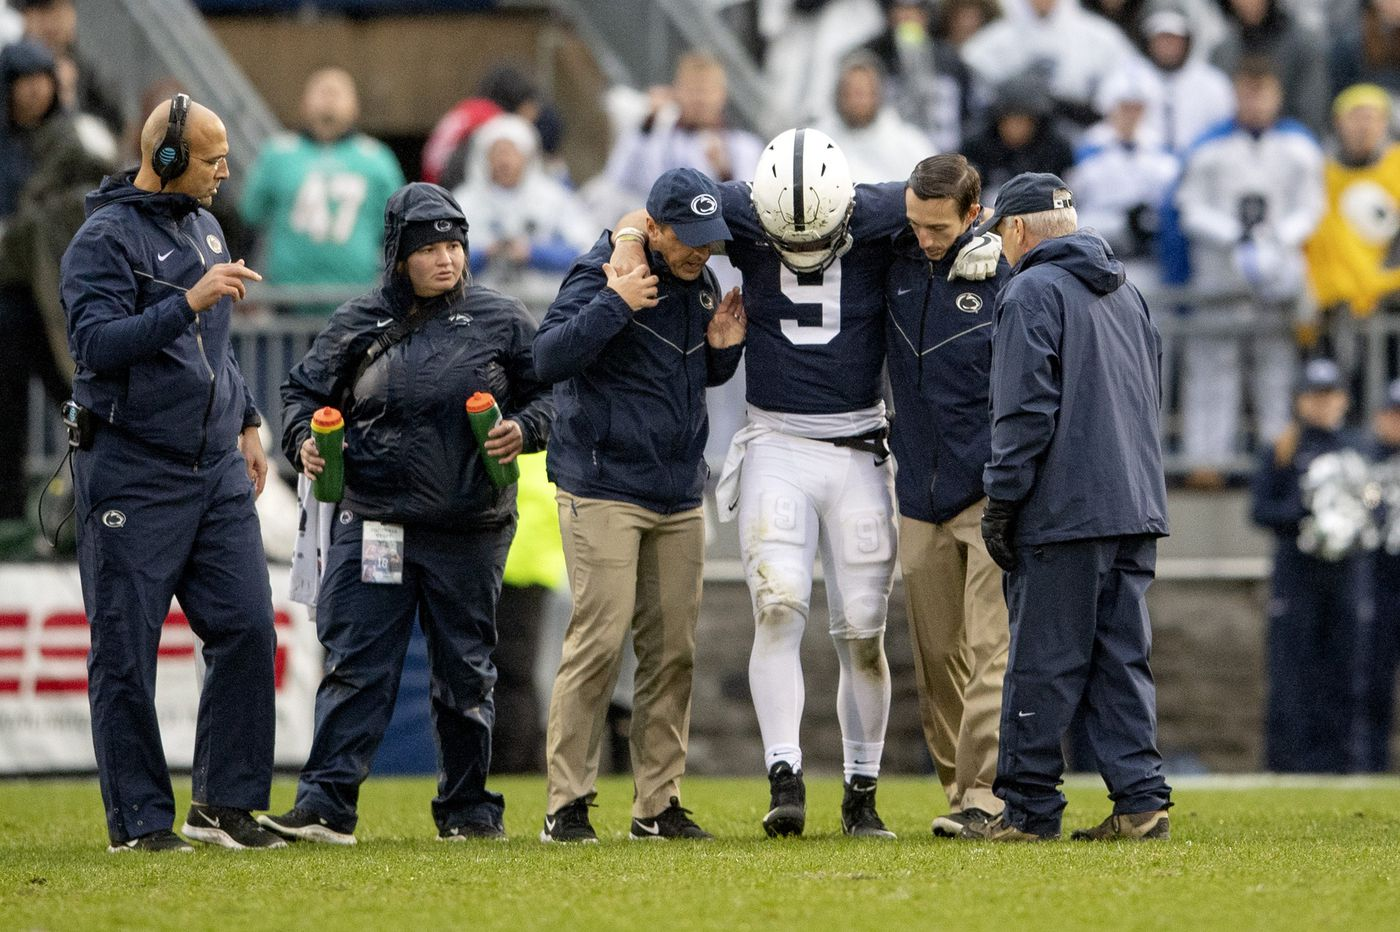 Trace McSorley's durability is the key to Penn State's success